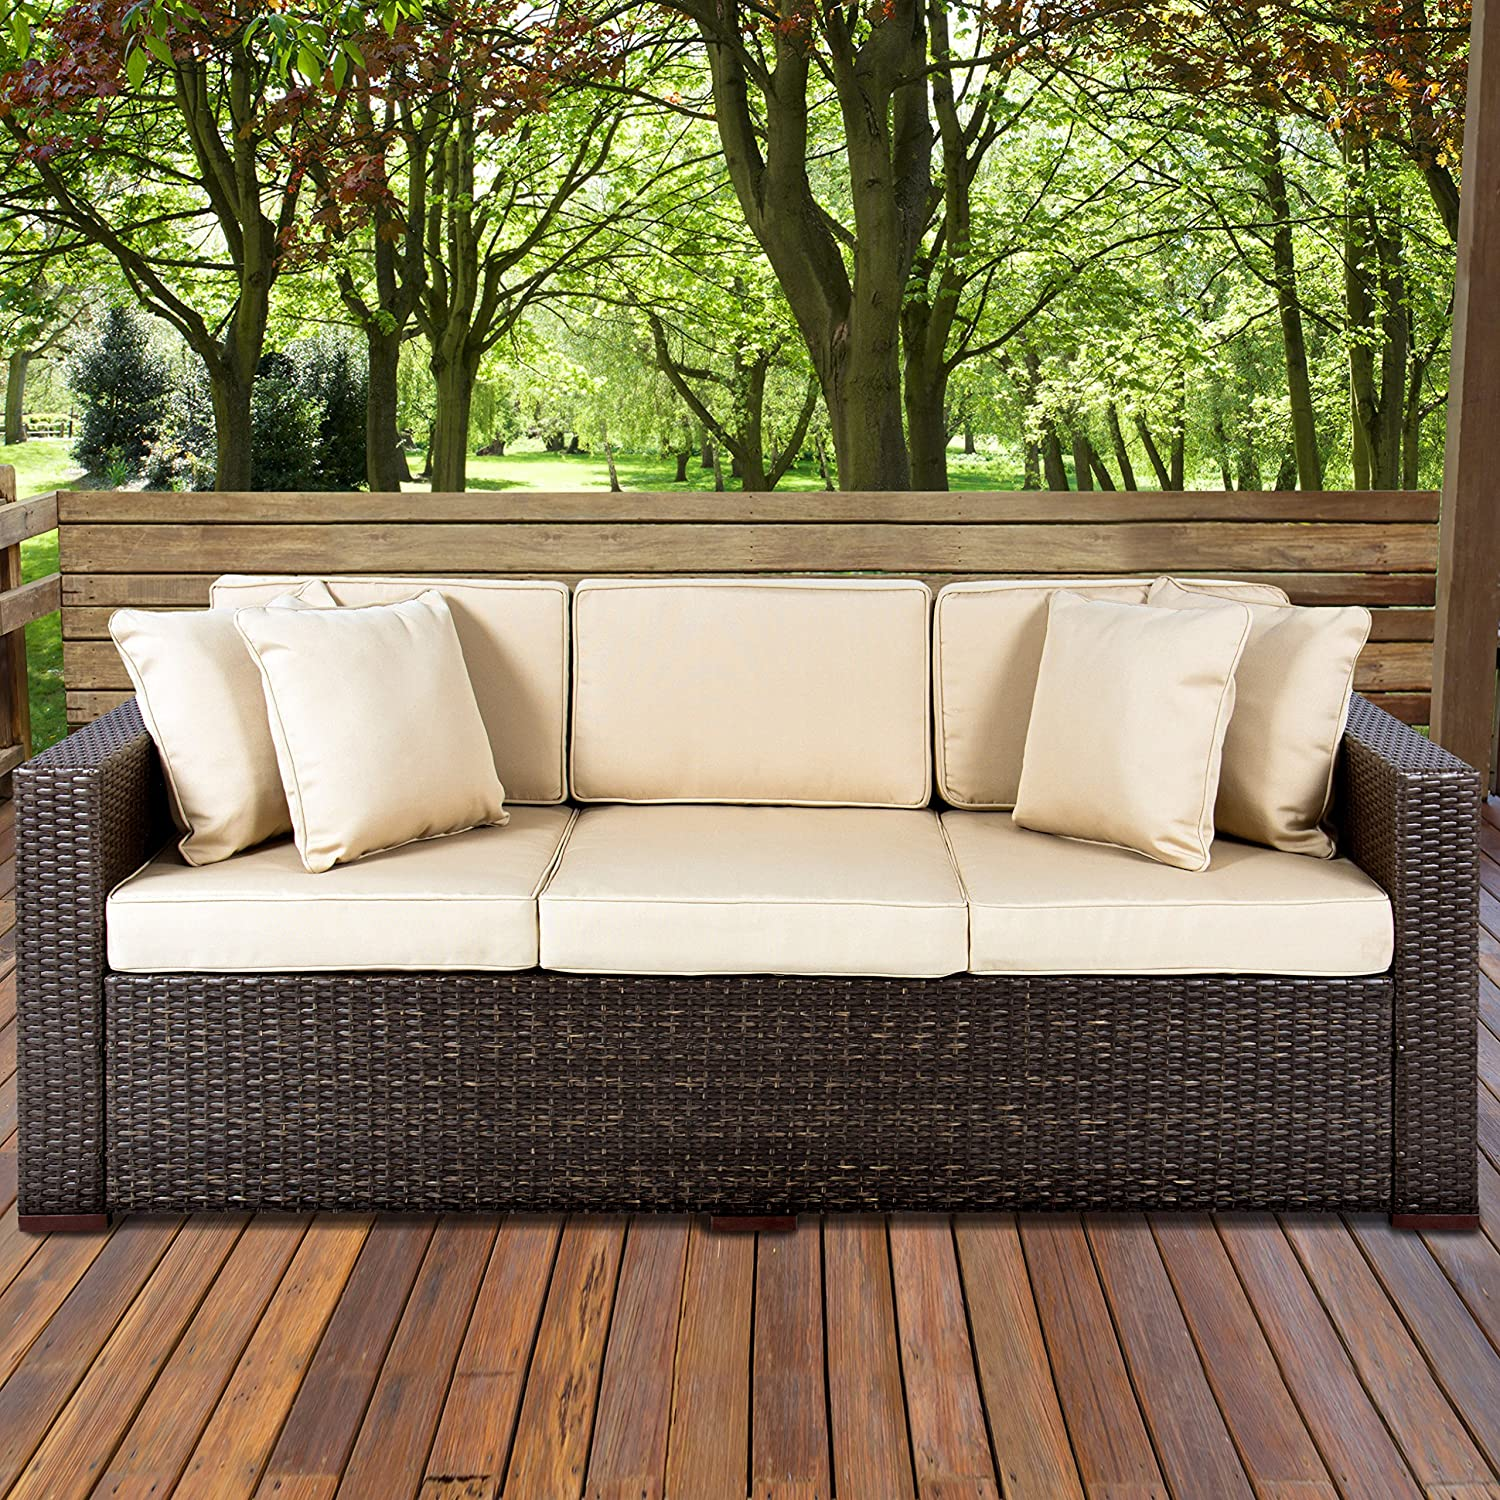 conversation patio set seating with bay p sets resin hampton tacana st piece wicker beige furniture deep cushions